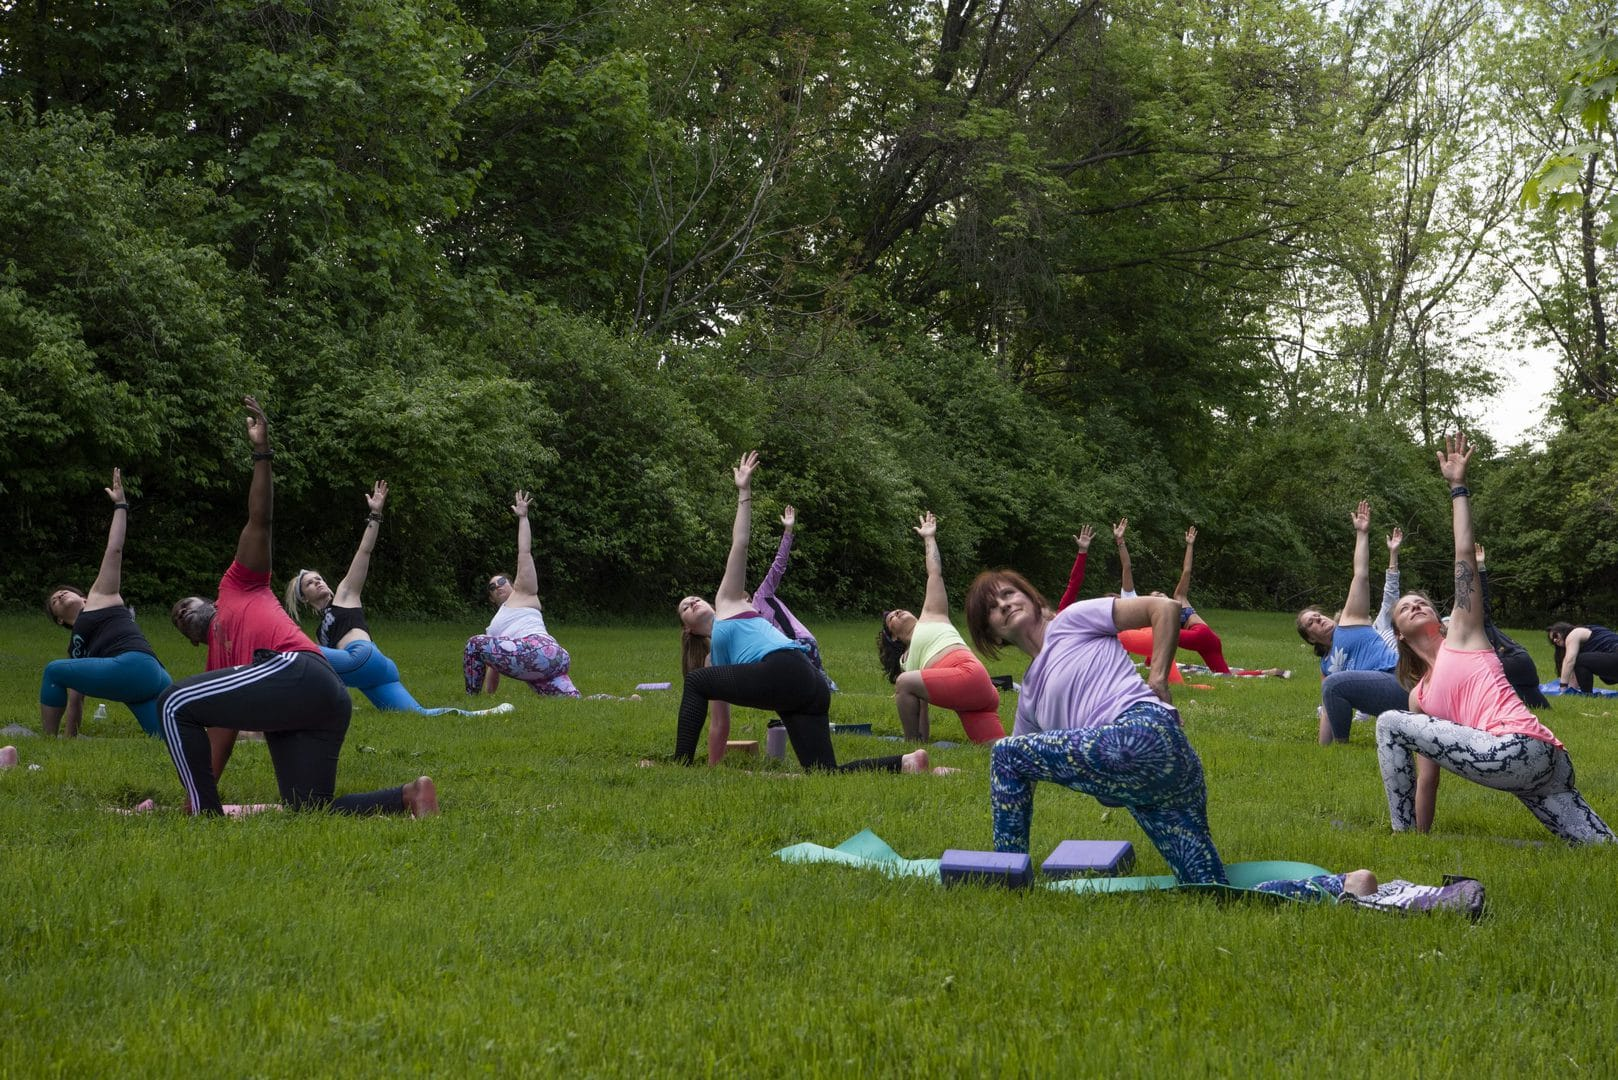 Diverse group of people doing yoga in a field with trees